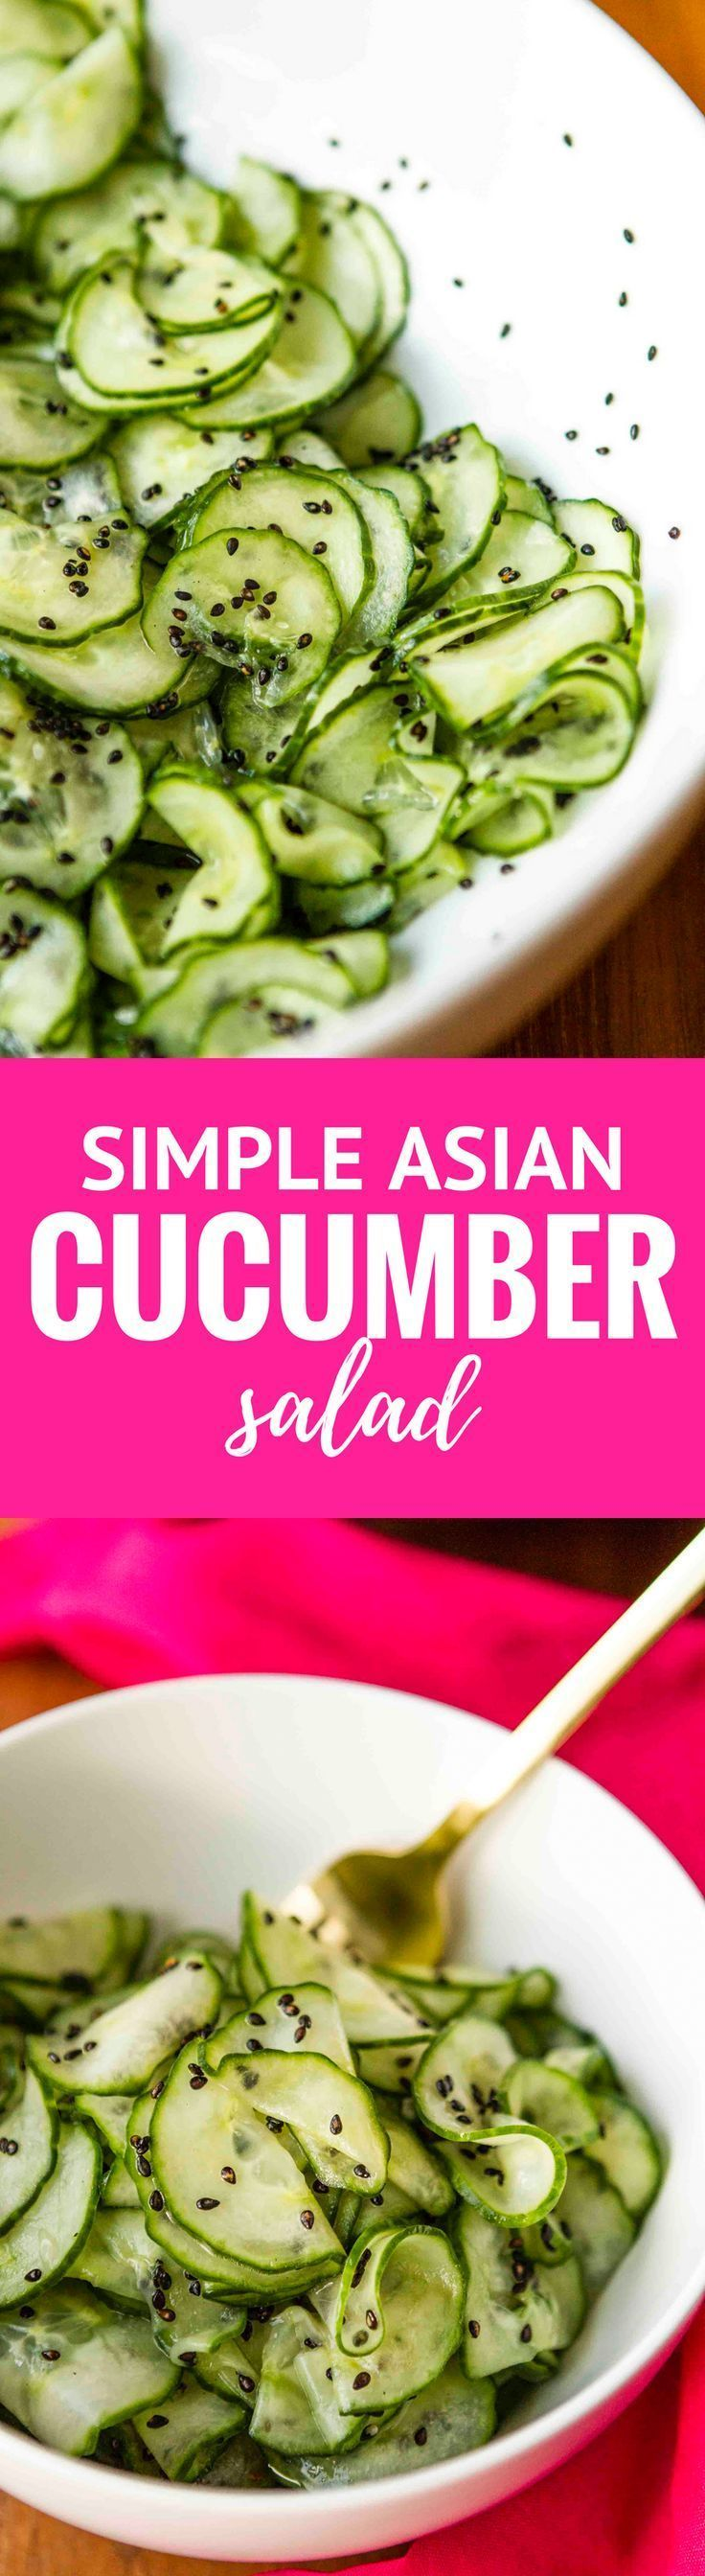 Asian Cucumber Salad -- this simple cucumber salad recipe is super light and refreshing, perfect for hot summer days� Rice vinegar and dark sesame oil, along with toasted sesame seeds give it a delicious Asian flair! | http://unsophisticook.com